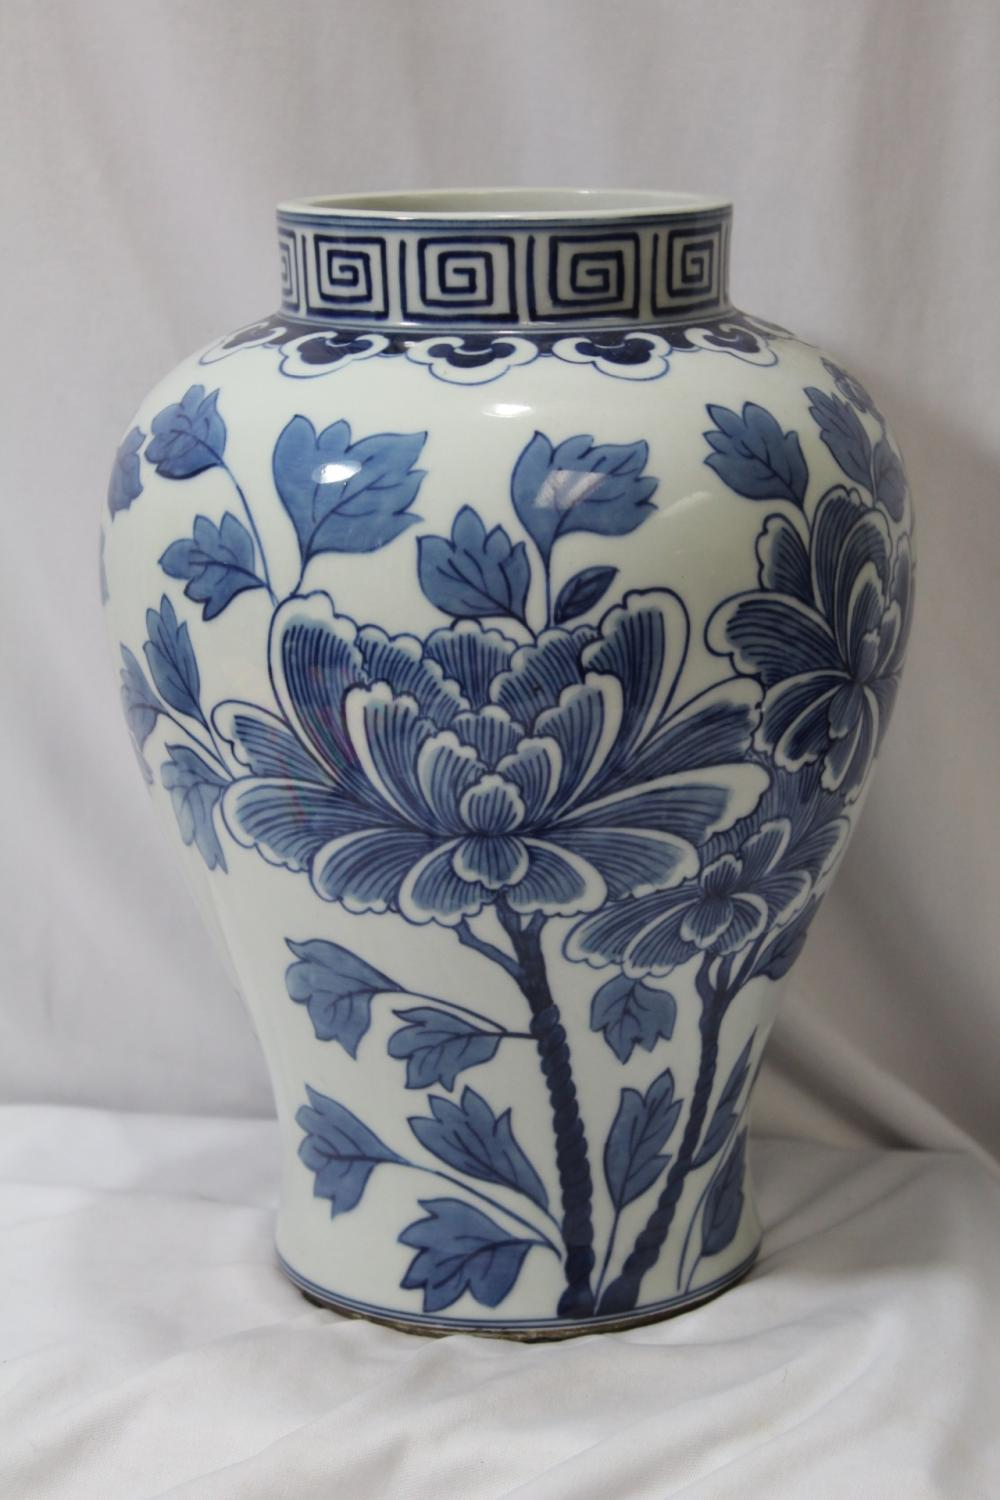 A Well Made Gumps Blue and White Vase